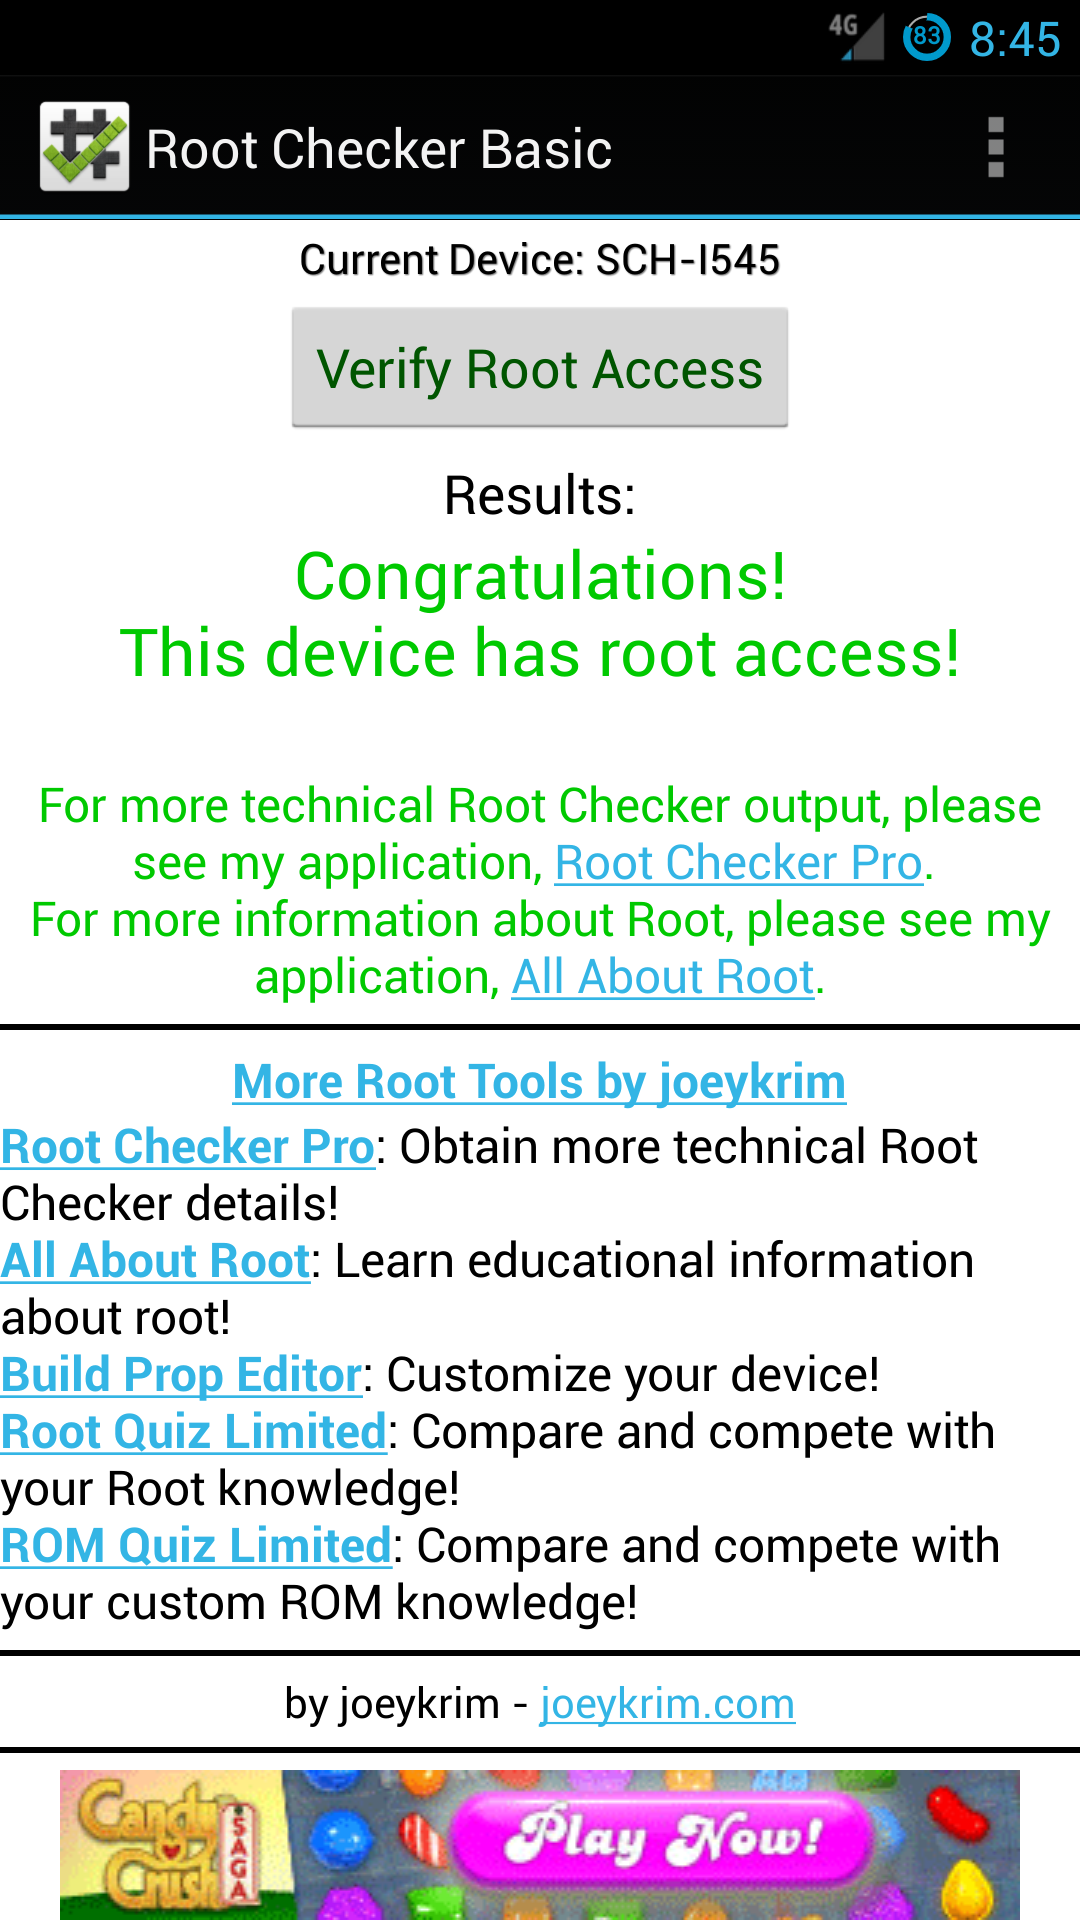 How to Root the Samsung Galaxy S4 and Install a Custom ROM